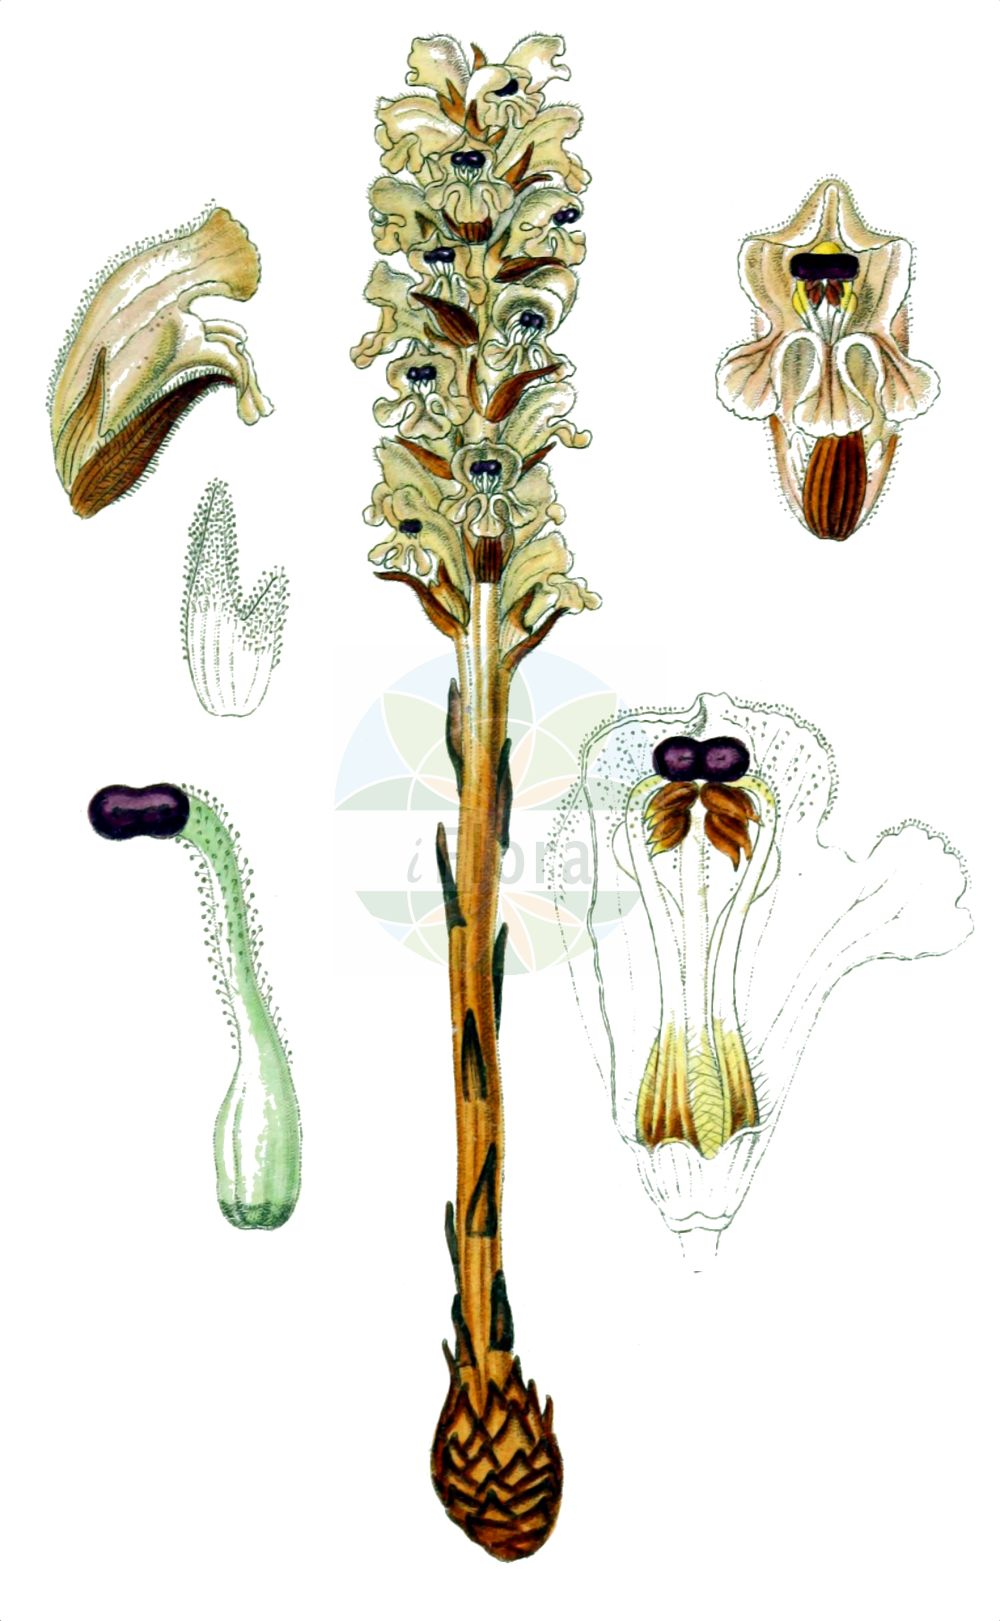 Historische Abbildung von Orobanche caryophyllacea (Nelken-Sommerwurz - Bedstraw Broomrape). Das Bild zeigt Blatt, Bluete, Frucht und Same. ---- Historical Drawing of Orobanche caryophyllacea (Nelken-Sommerwurz - Bedstraw Broomrape).The image is showing leaf, flower, fruit and seed.(Orobanche caryophyllacea,Nelken-Sommerwurz,Bedstraw Broomrape,Orobanche buhsei,Orobanche caryophyllacea,Orobanche clausonis,Orobanche galii,Orobanche hesperina,Orobanche vulgaris,Nelken-Sommerwurz,Gemeine Sommerwurz,Bedstraw Broomrape,Clove-scented Broomrape,Orobanche,Sommerwurz,Broomrape,Orobanchaceae,Sommerwurzgewaechse,Broomrape family,Blatt,Bluete,Frucht,Same,leaf,flower,fruit,seed,Sturm (1796f))